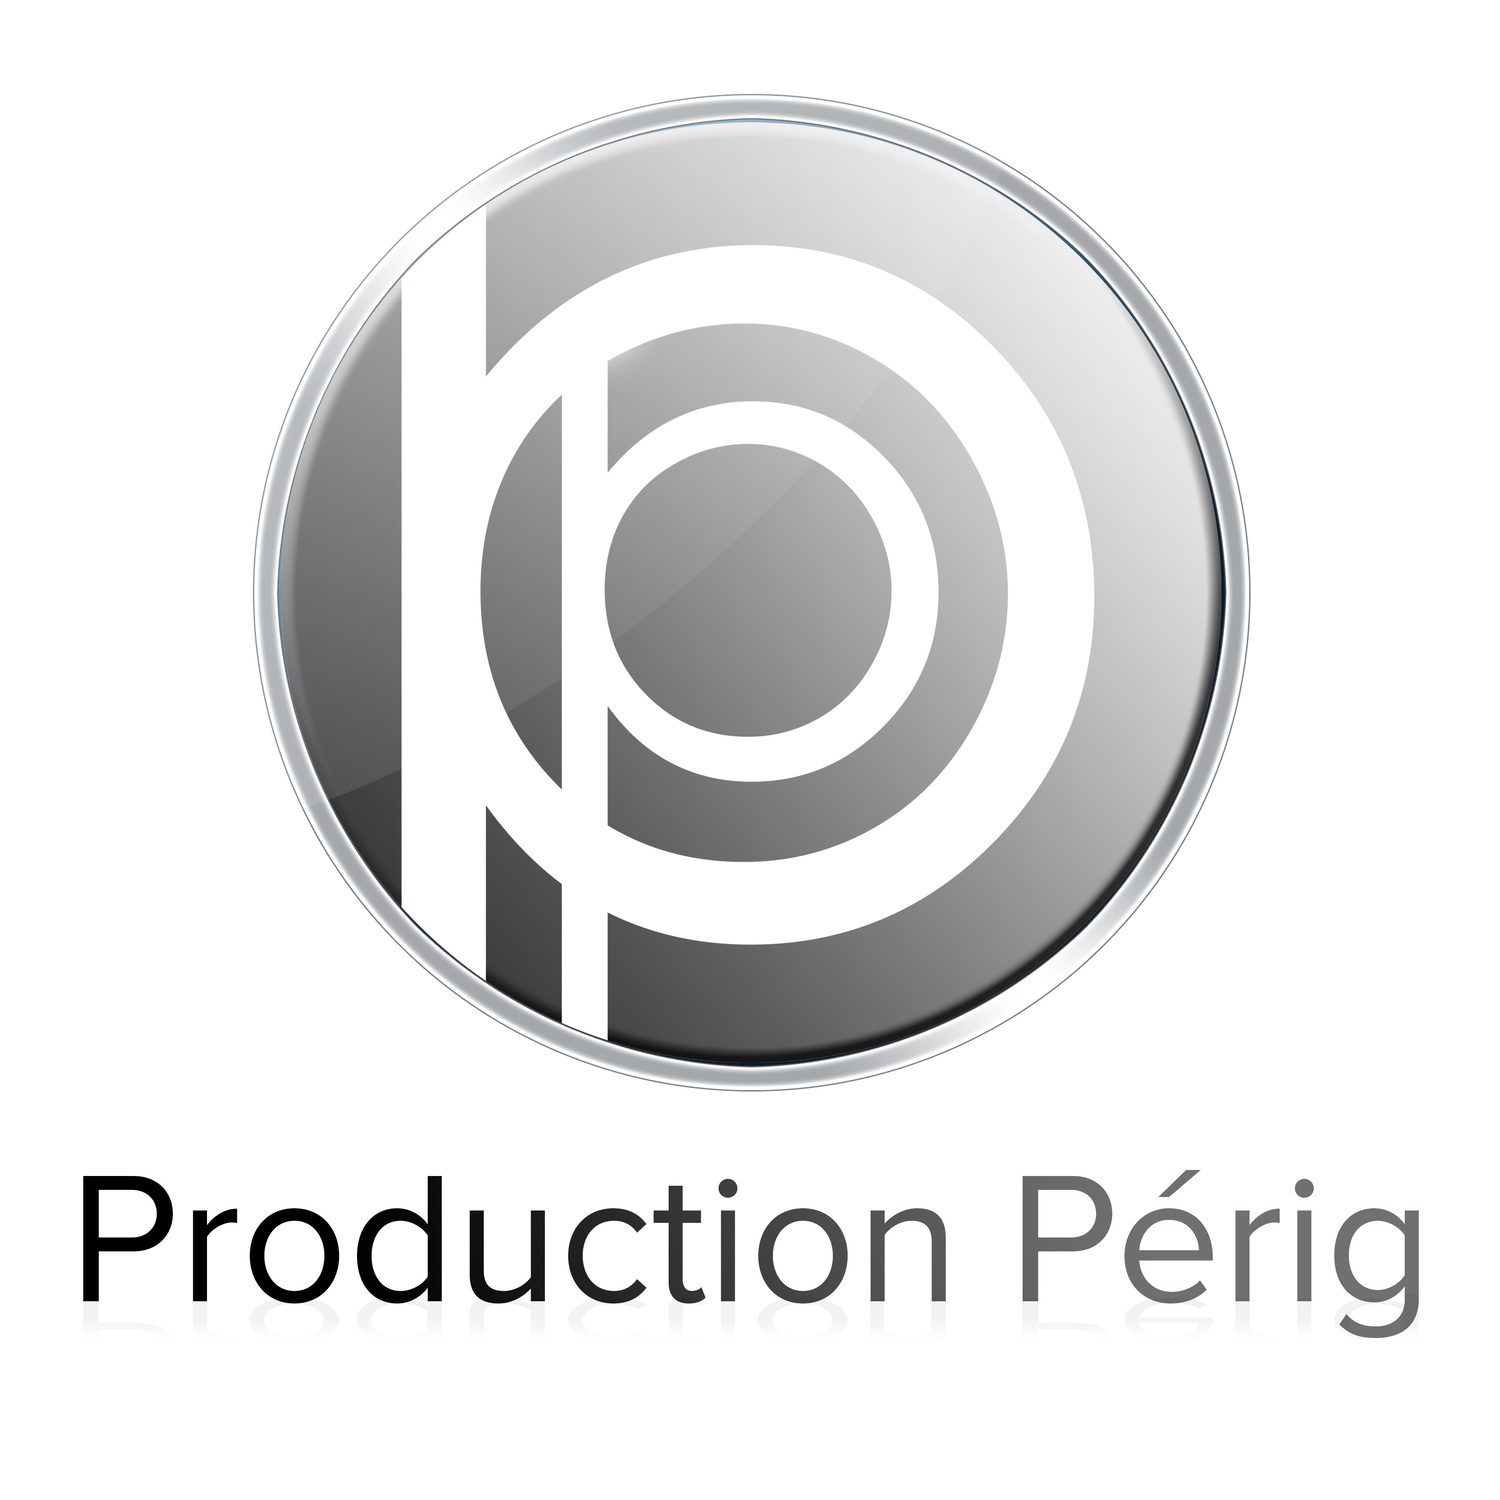 Production Périg